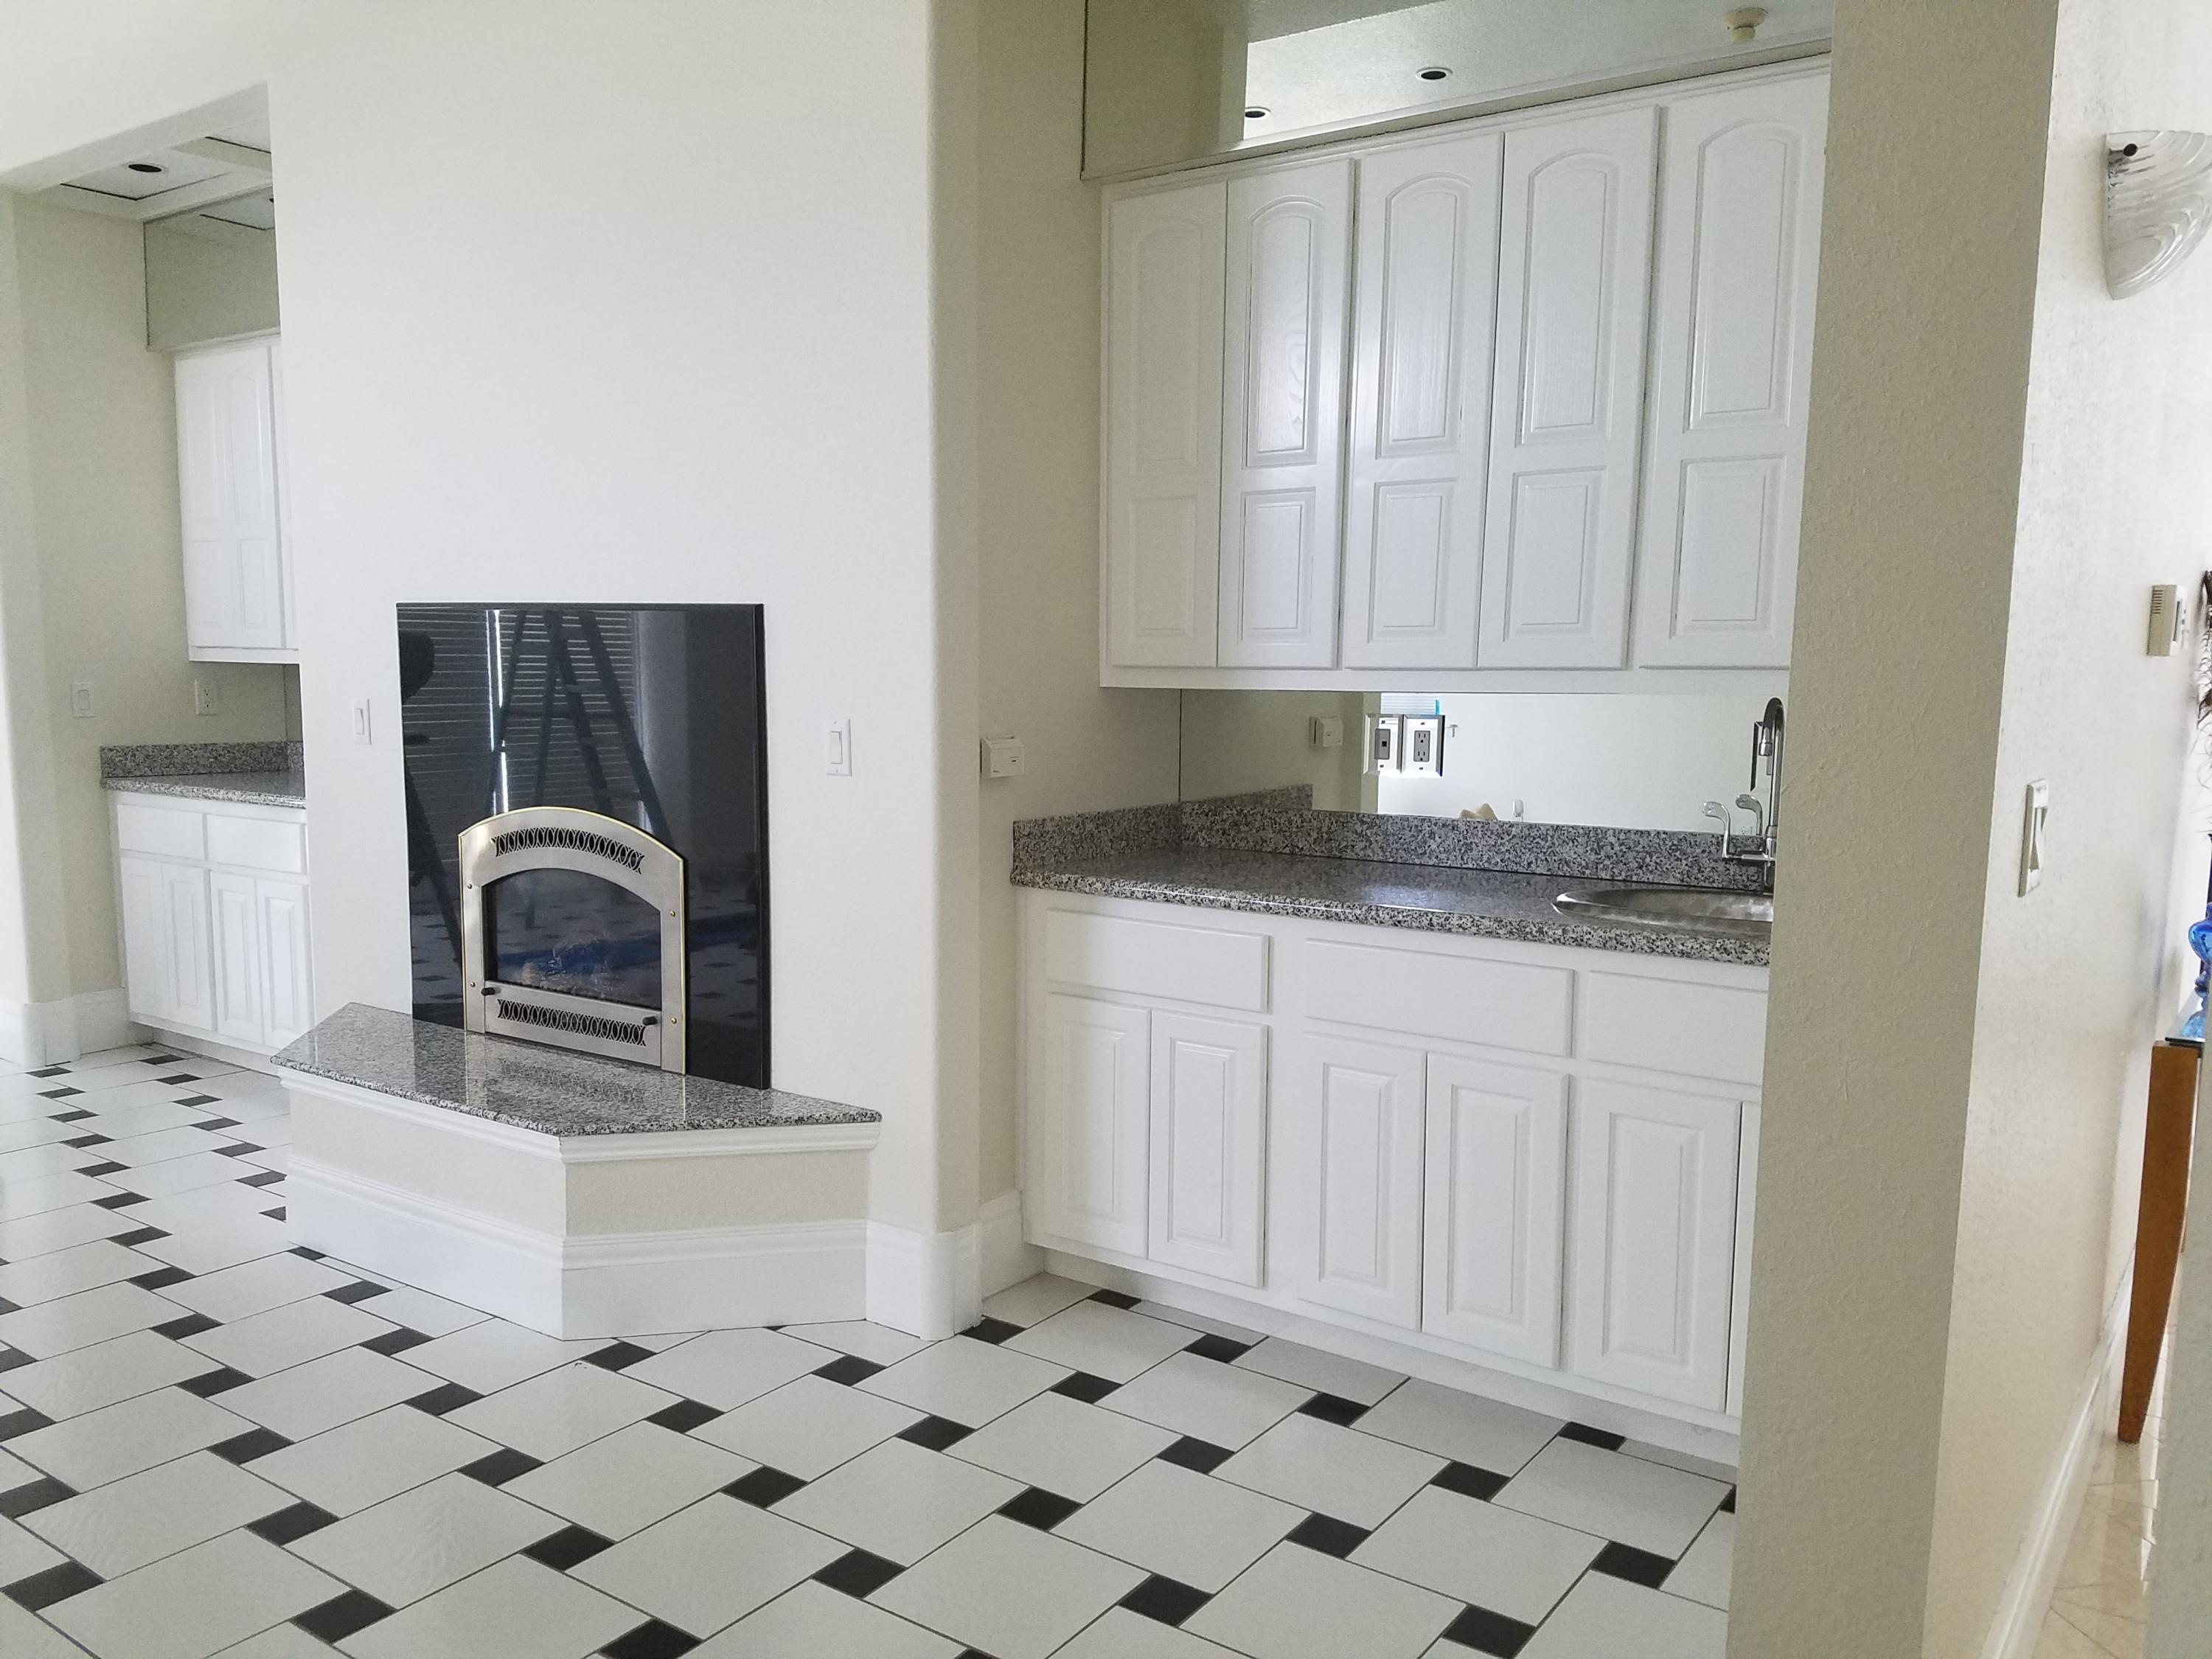 1 of 3 Fireplace